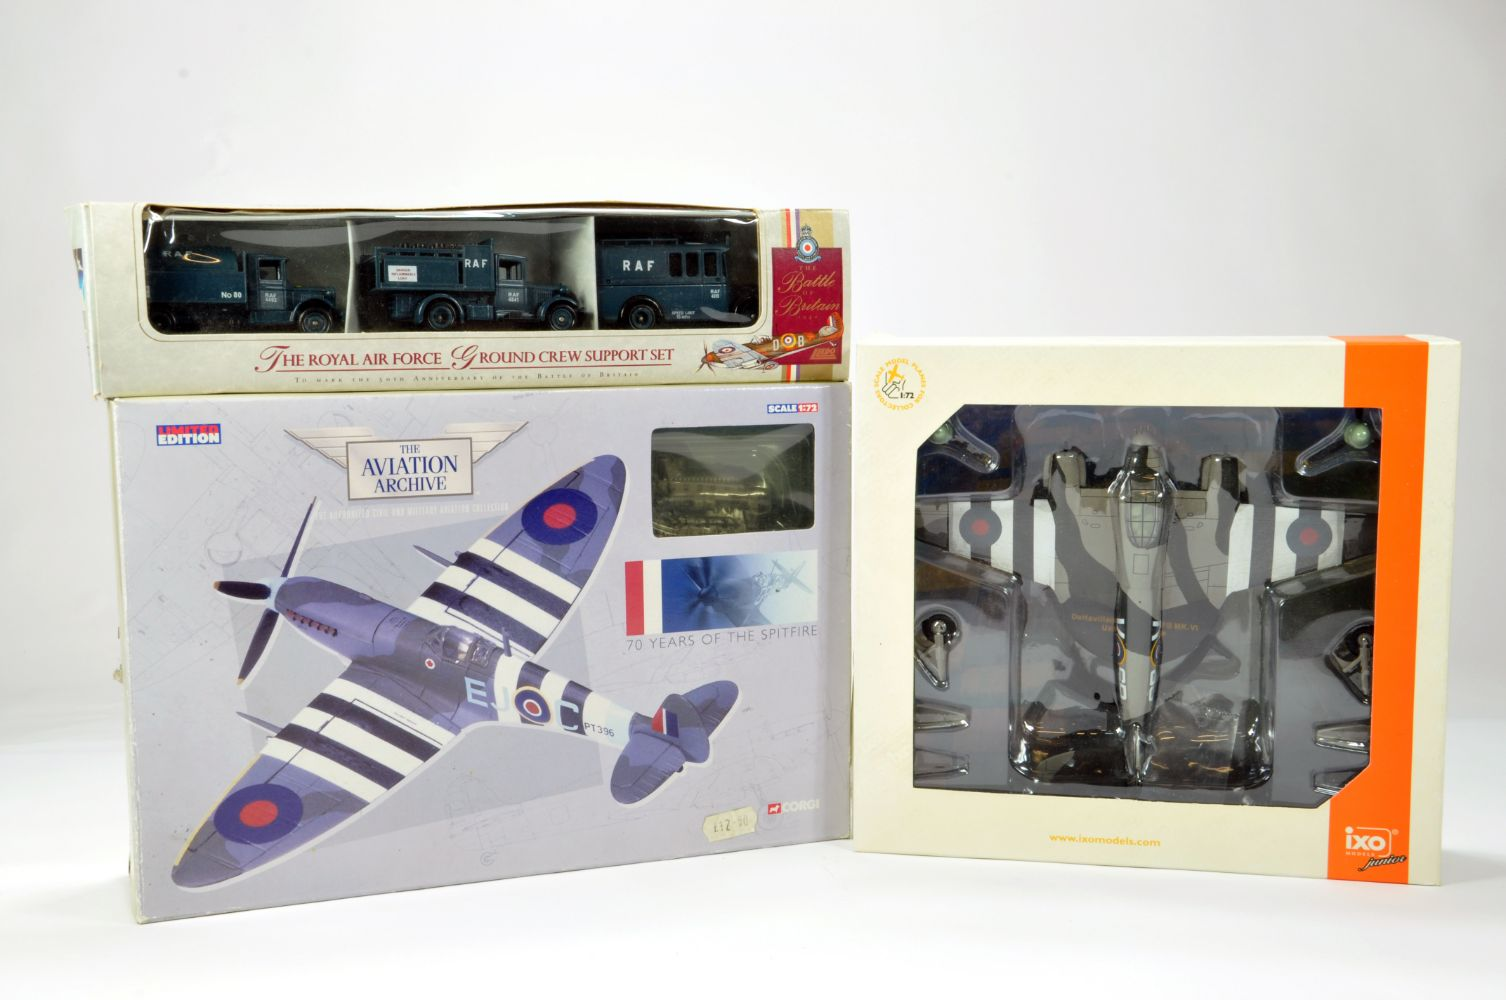 March Two Day Specialist Toys, Models & Collectables